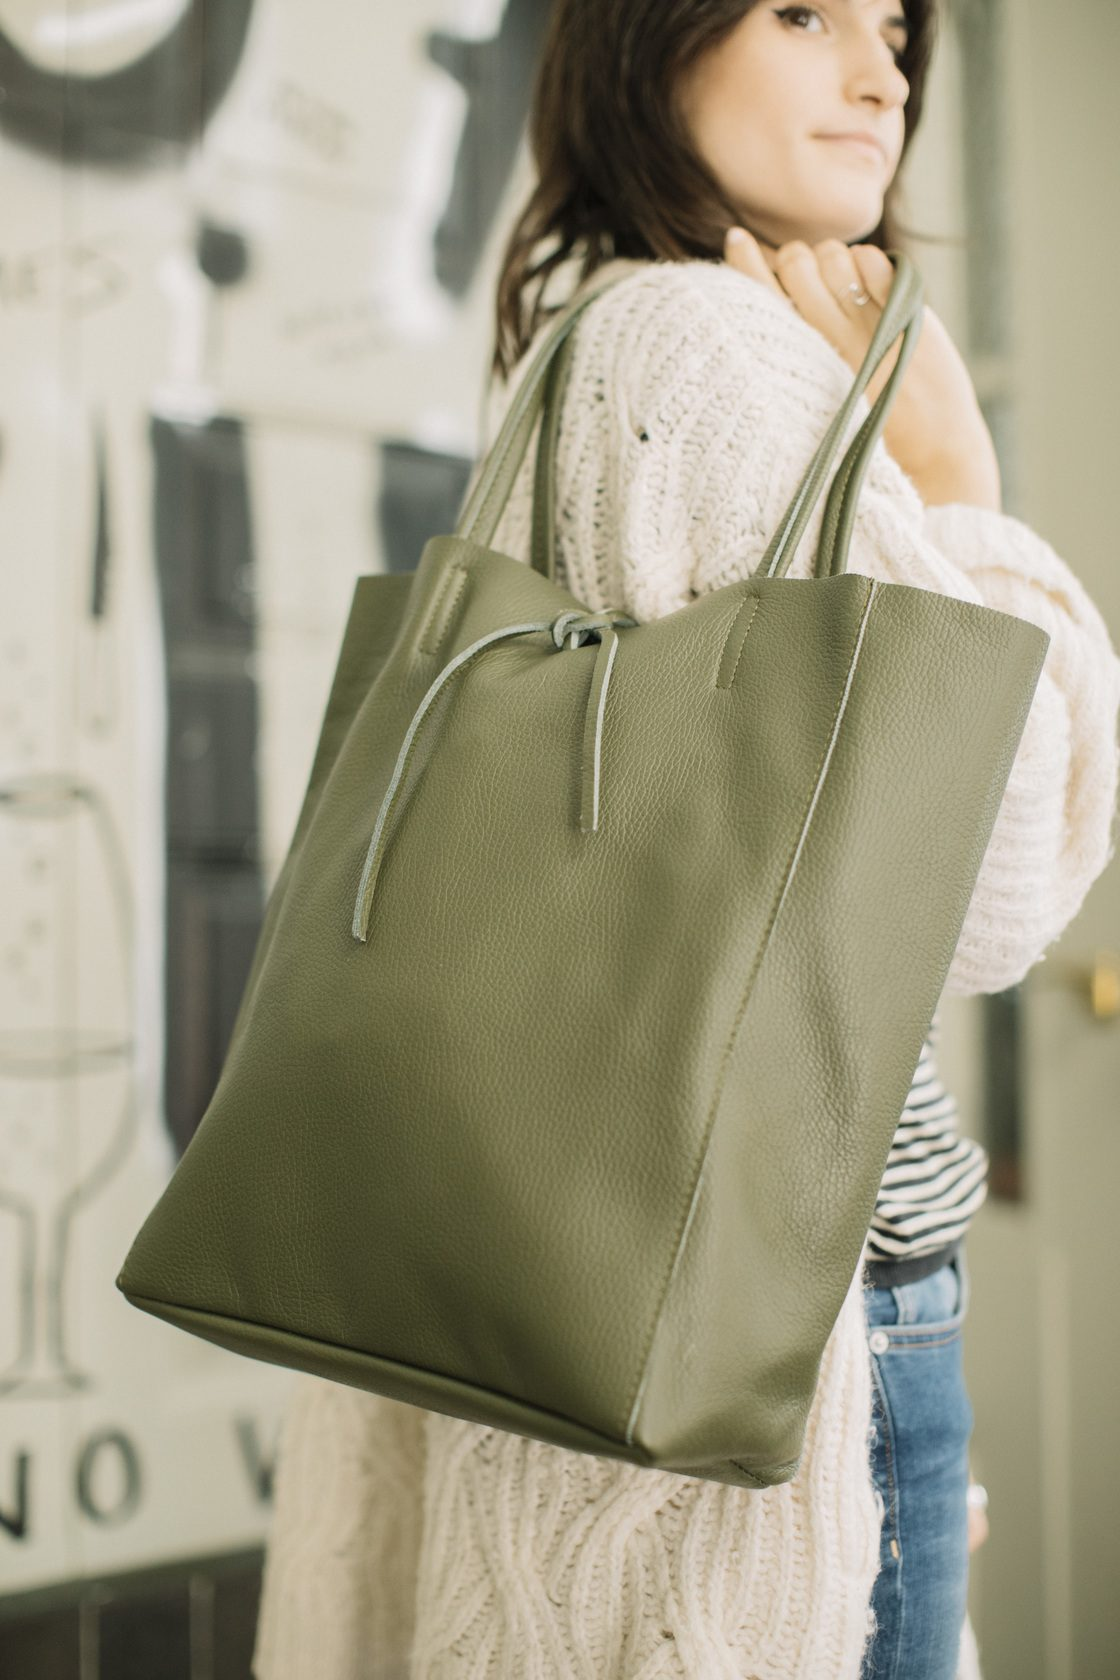 MARGOT SHOPPING BAG PIEL VERDE 9